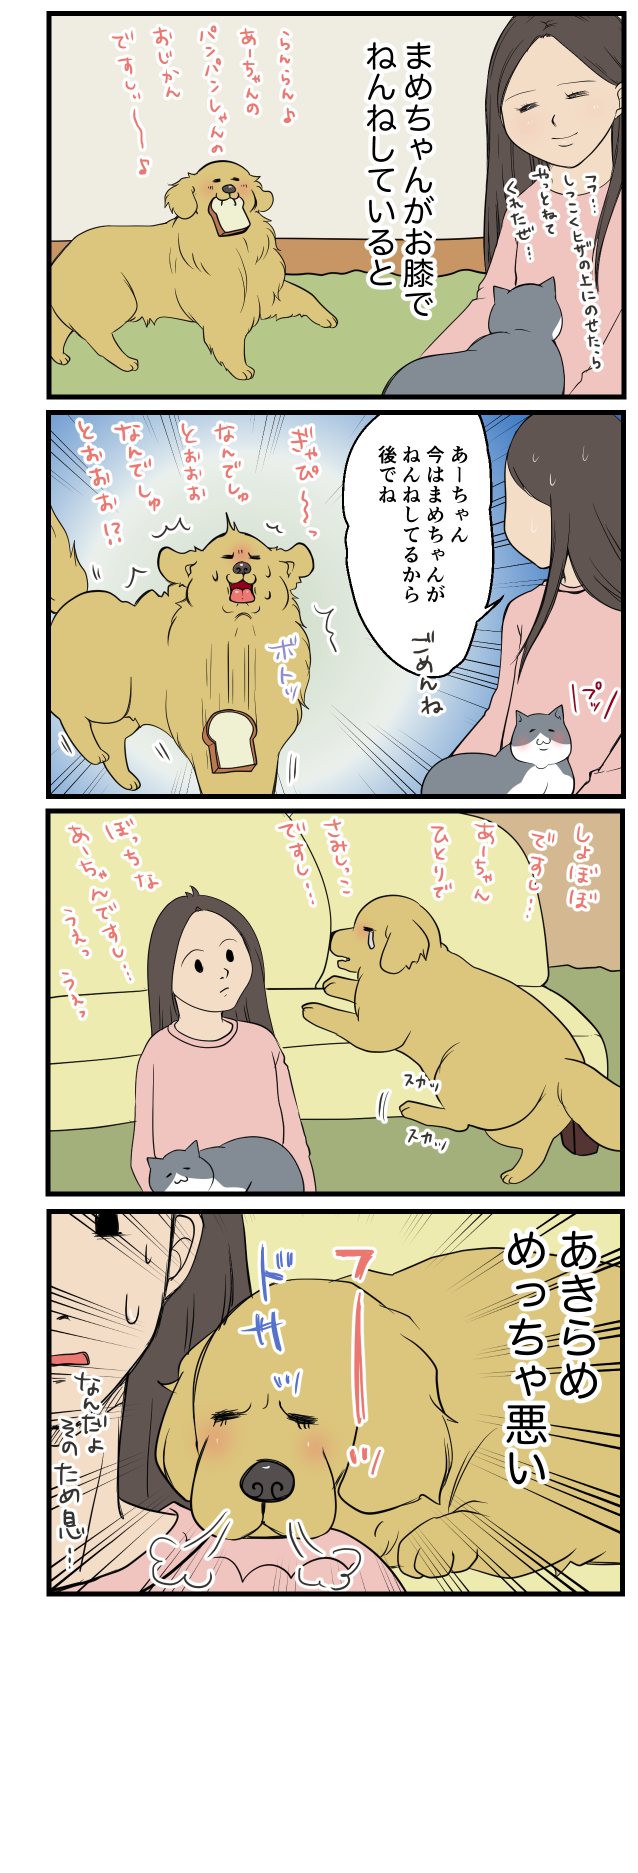 201803030042087a0.png